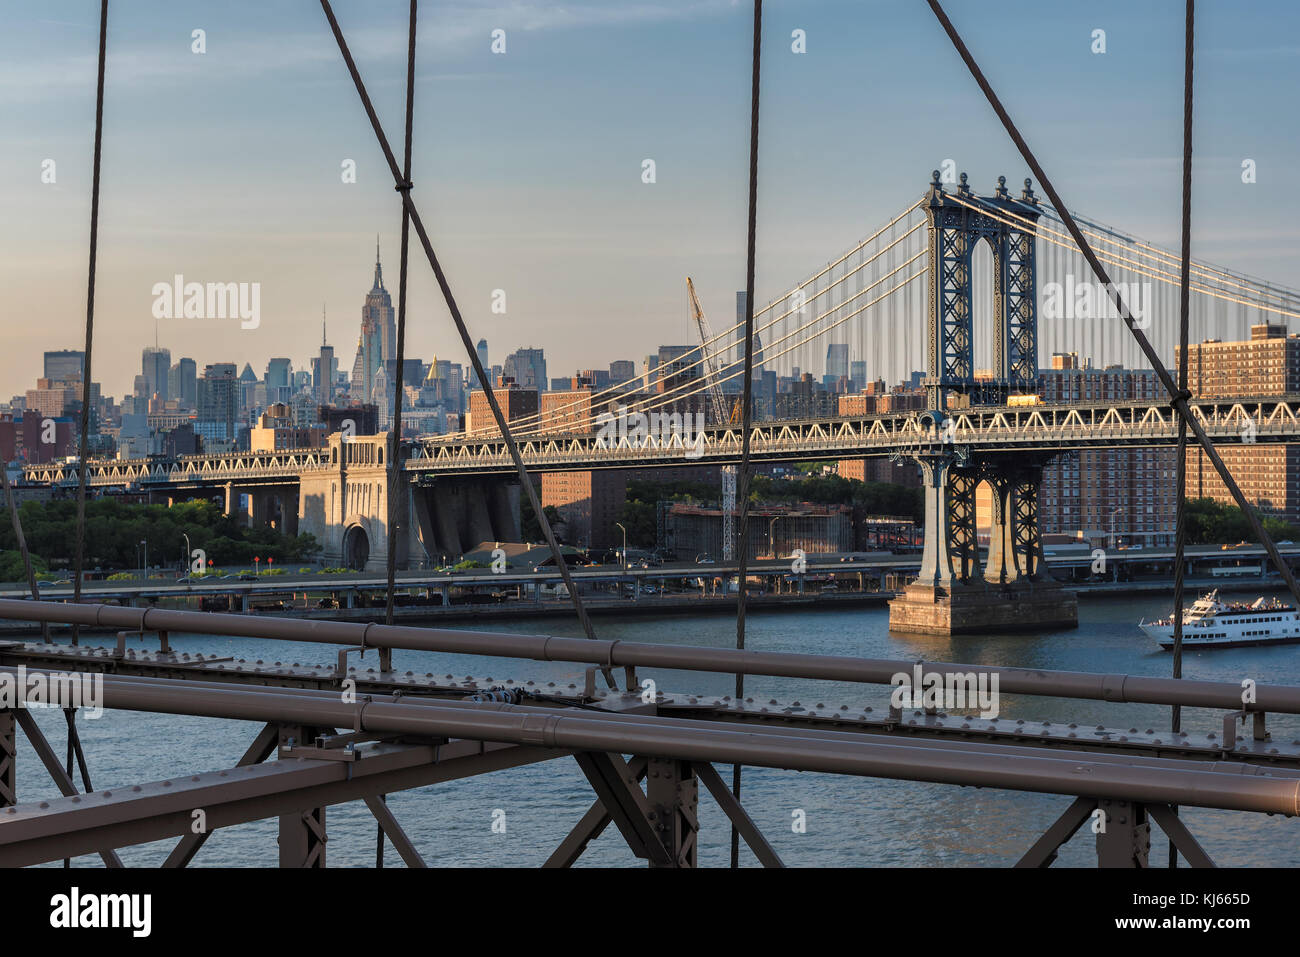 New York City skyline with Manhattan Bridge - Stock Image